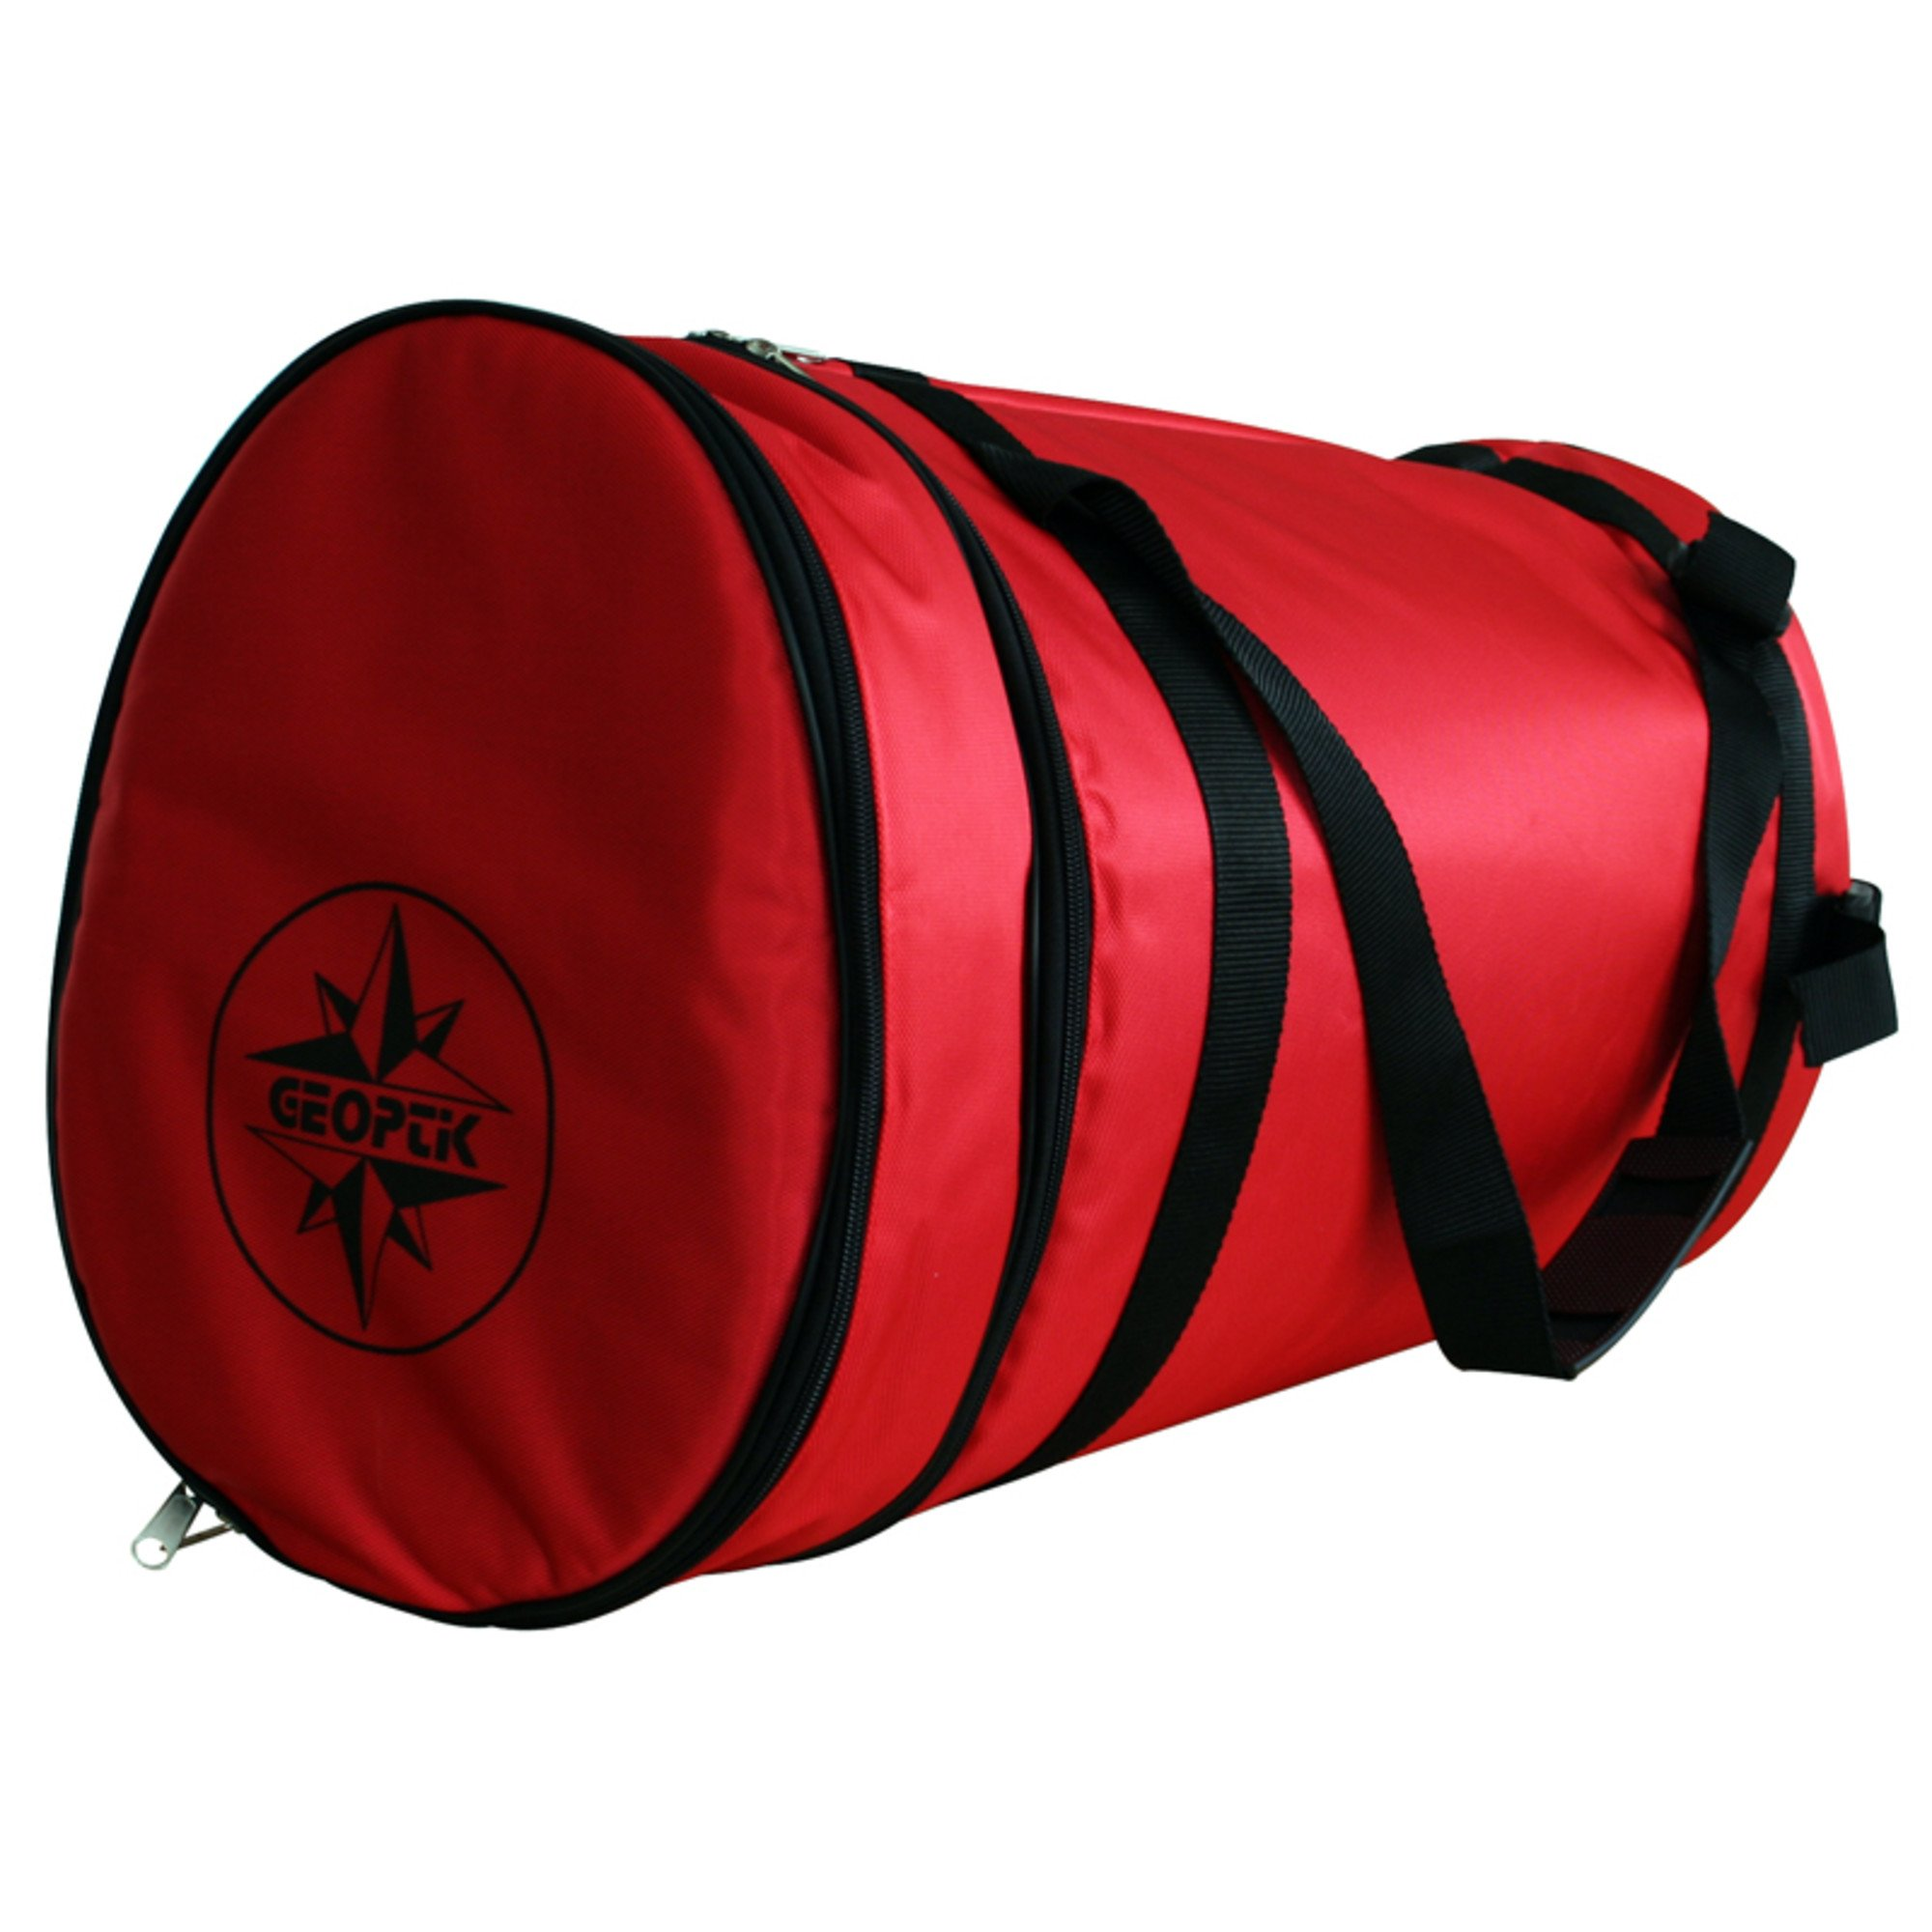 Telescope 30A036Padded Bag for Telescope, Red by Geoptik (Image #2)